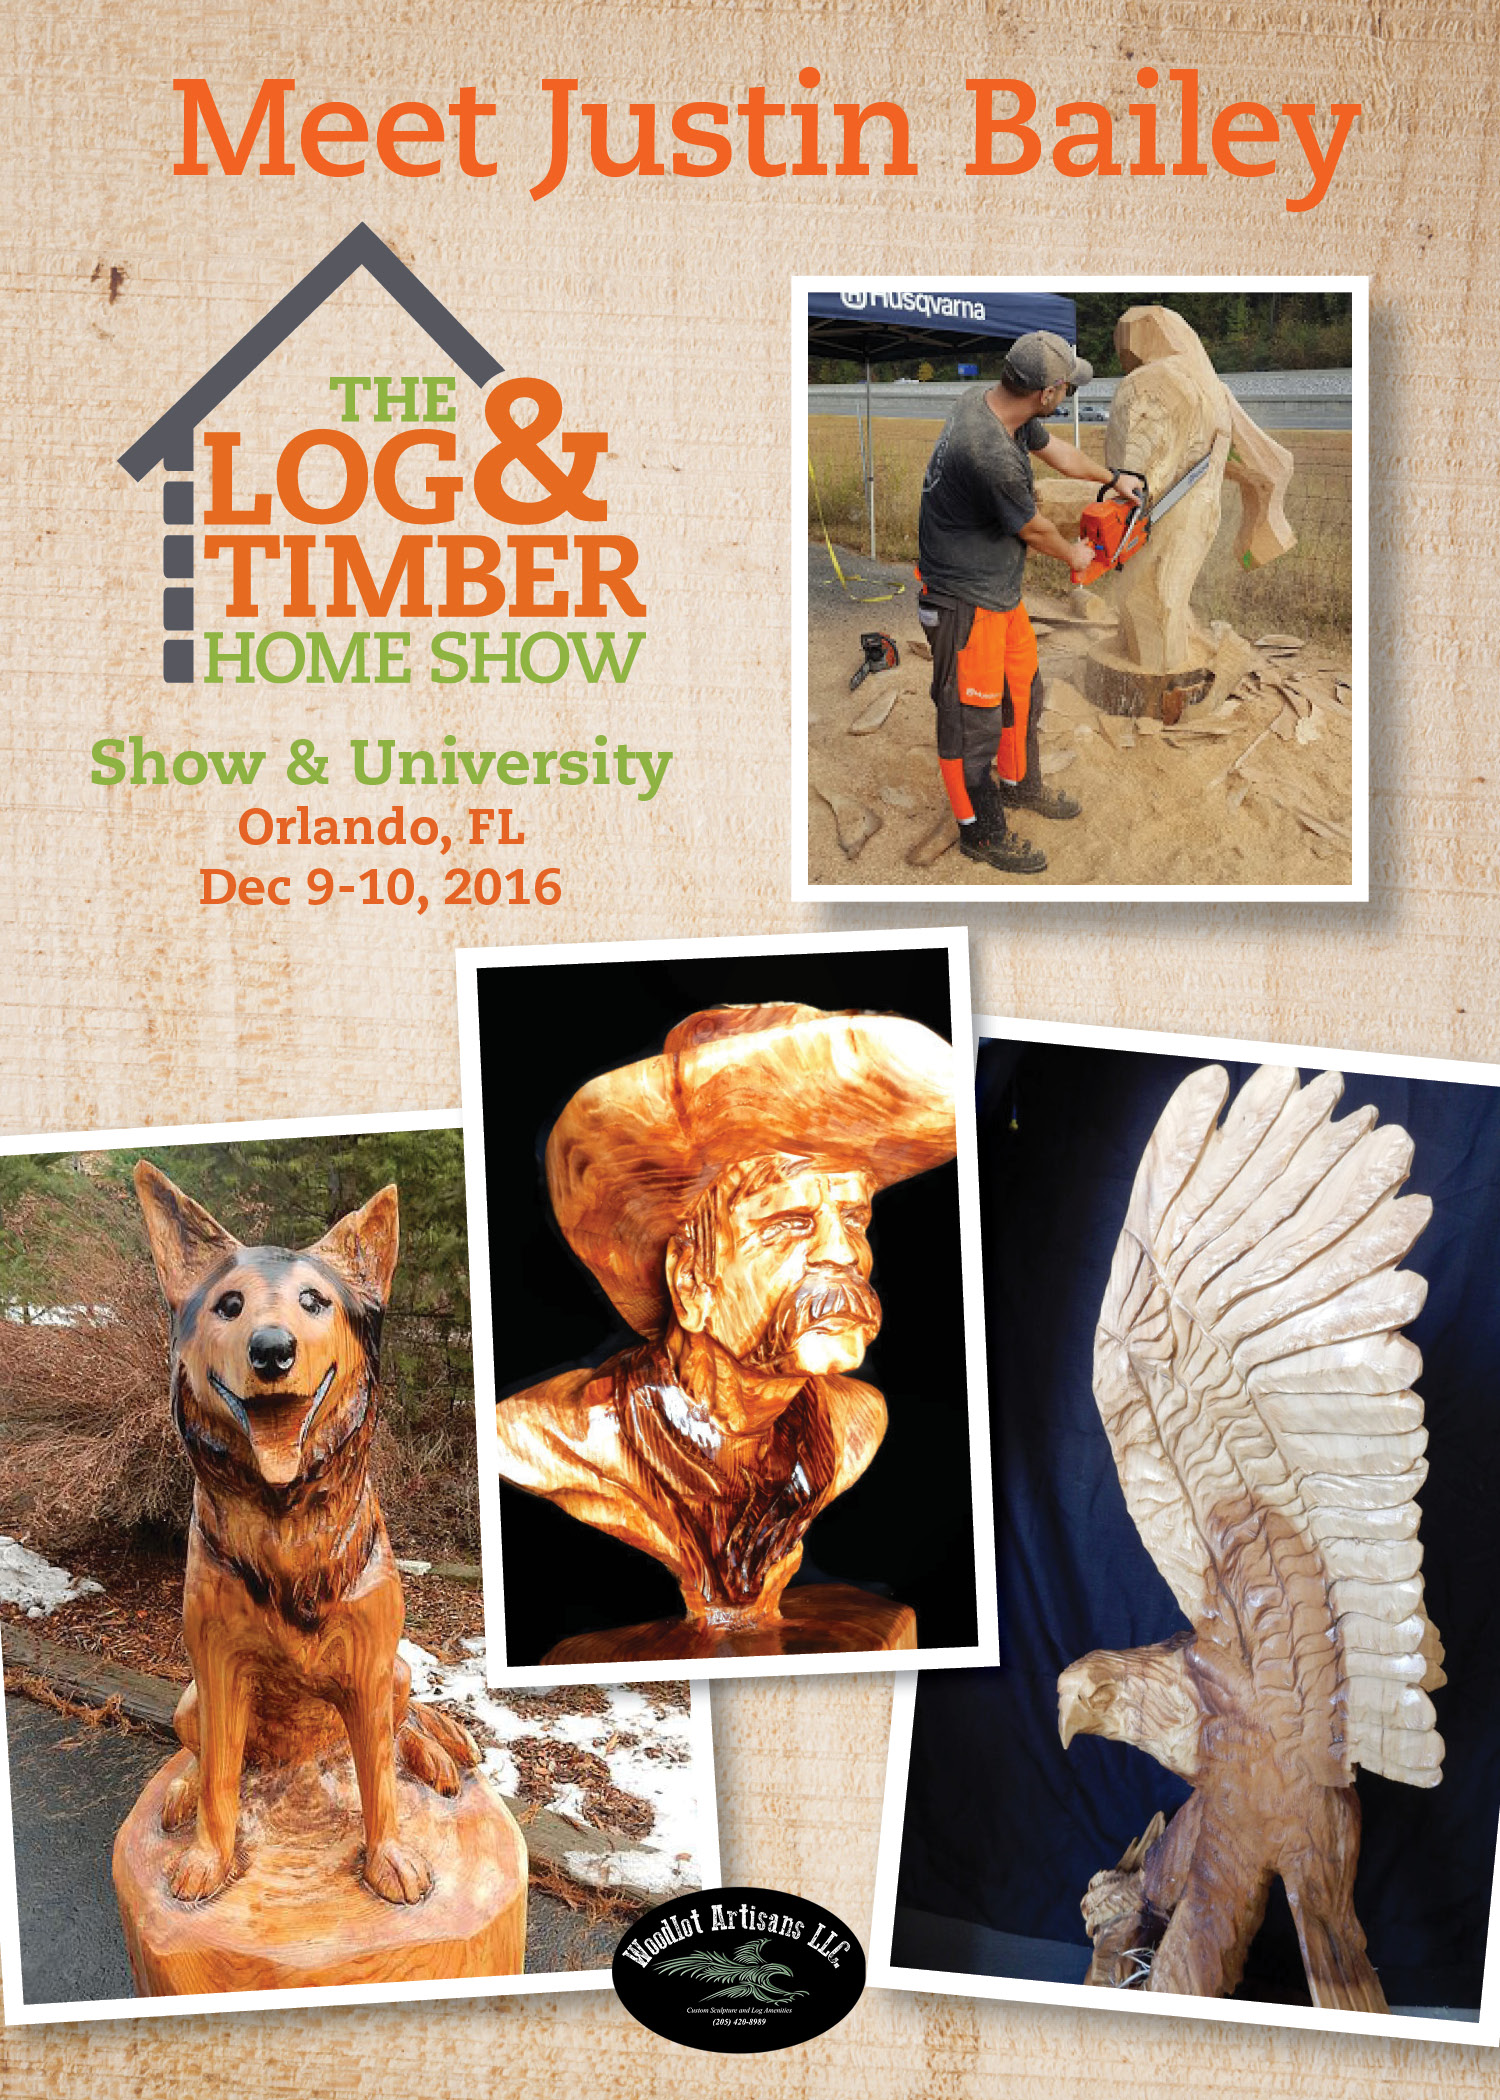 Orlando Log & Timber Home Show| December 9-10, 2016|Justin Bailey|Woodlot Artisans LLC